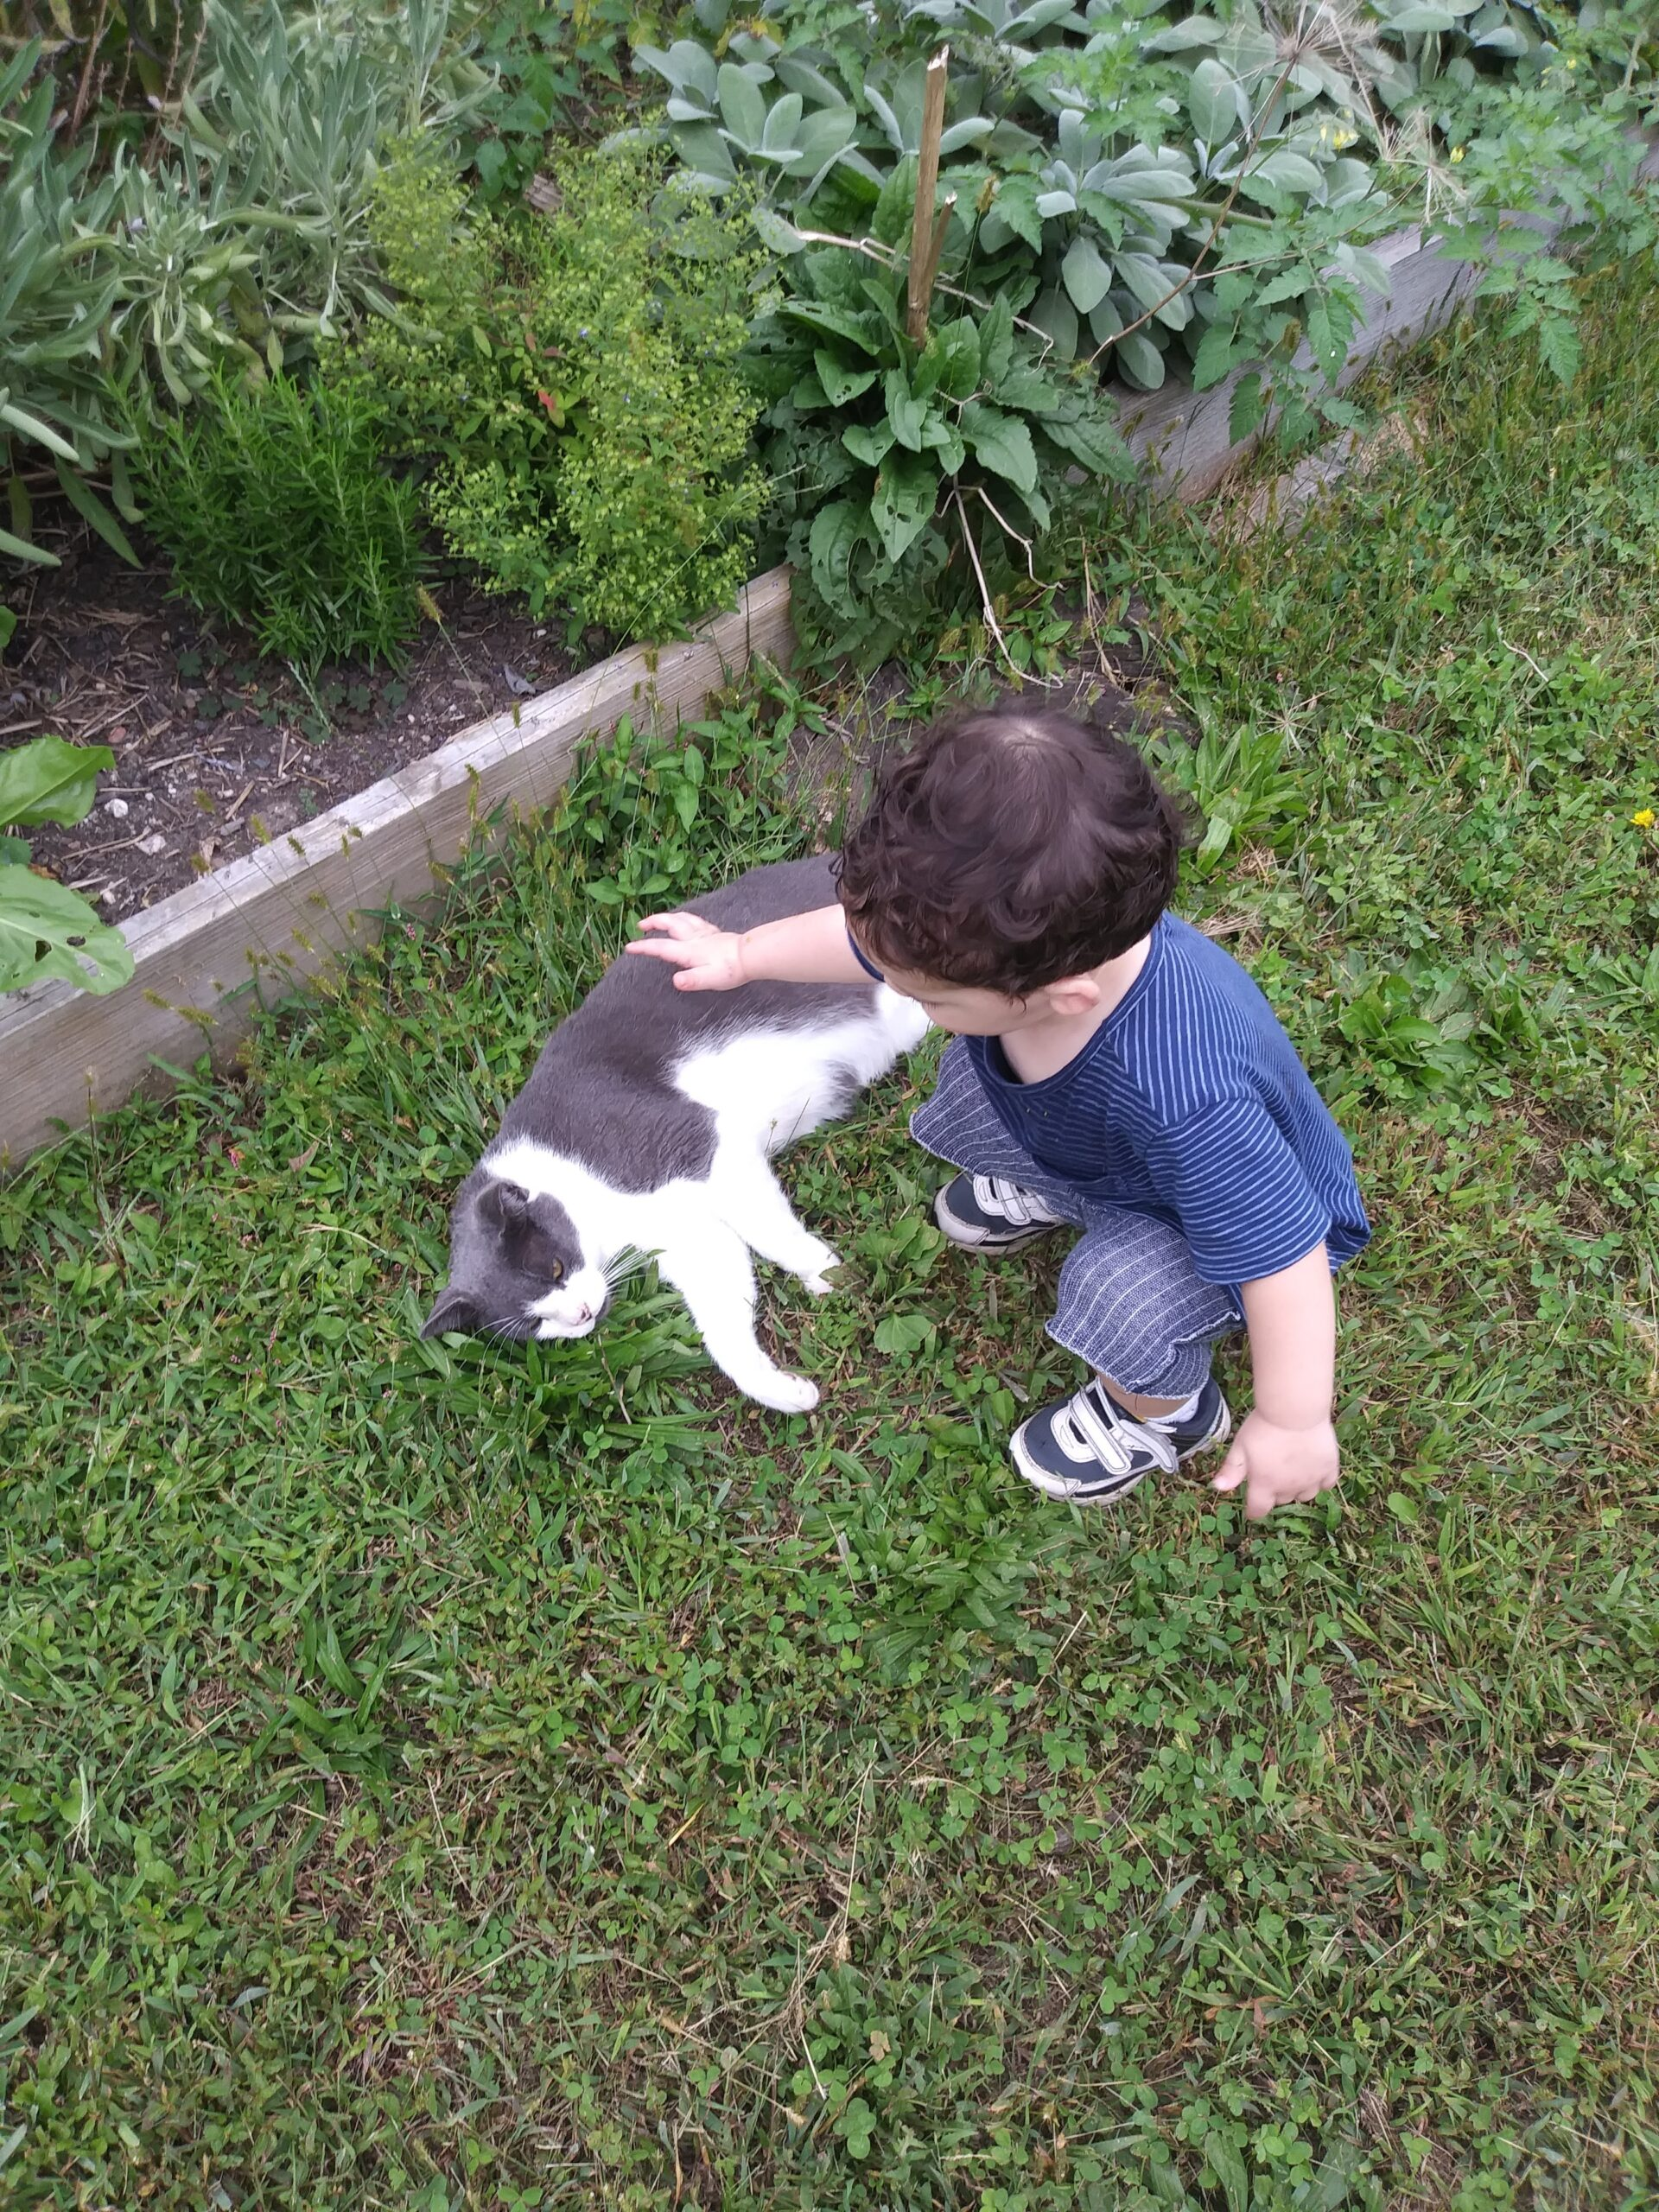 Toddler squatting to pet a gray and white cat lying on its side in the grass.